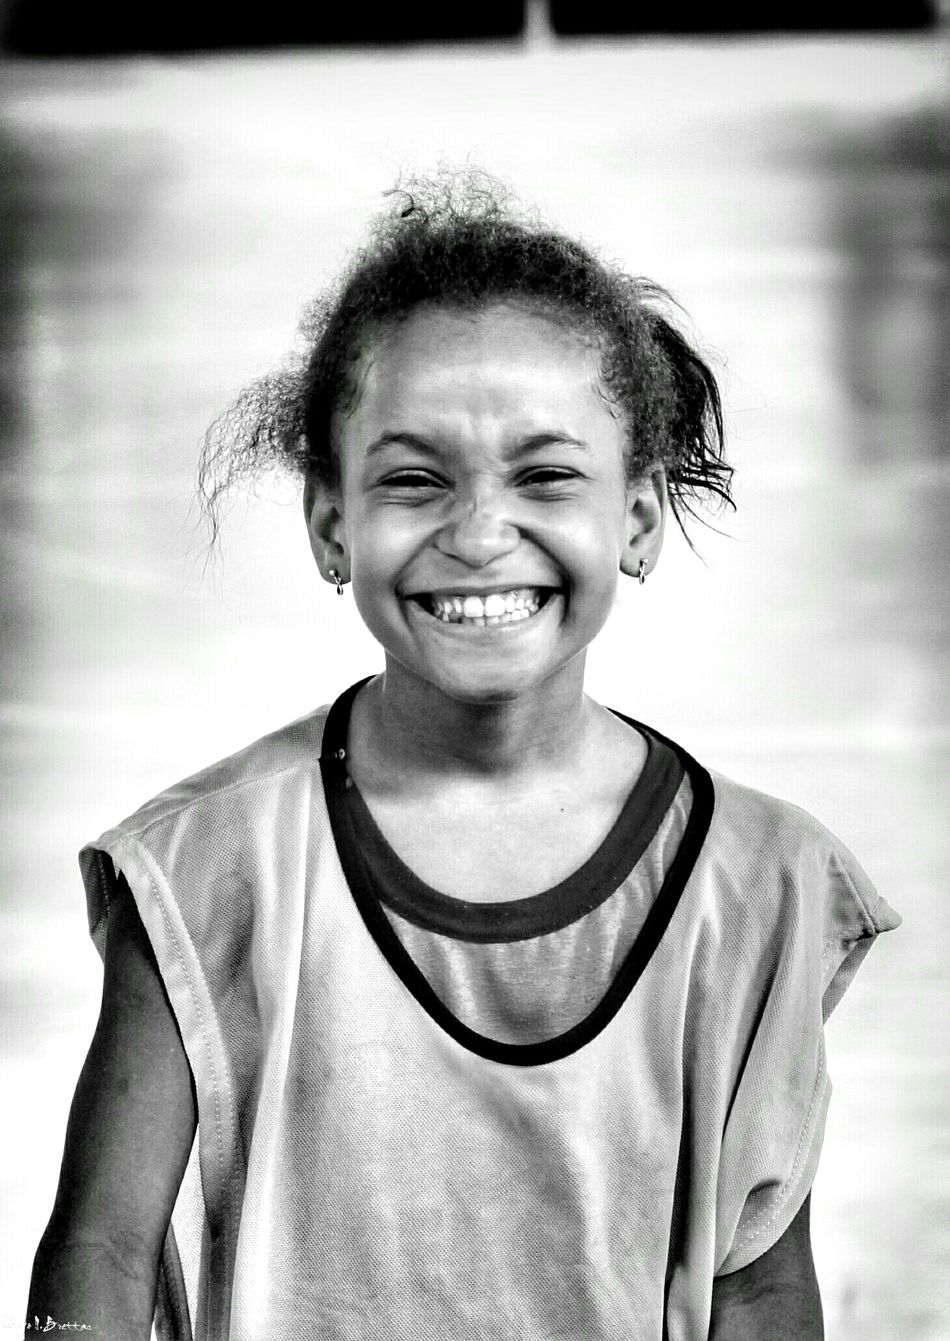 Portrait Looking At Camera Smiling Real People Happiness Lifestyles Cheerful Childhood One Person Close-up People Happiness Freshness Children Photography Social Documentary School Life  Black And White Leisure Activity Black & White Social Photography Relaxation Light And Shadow